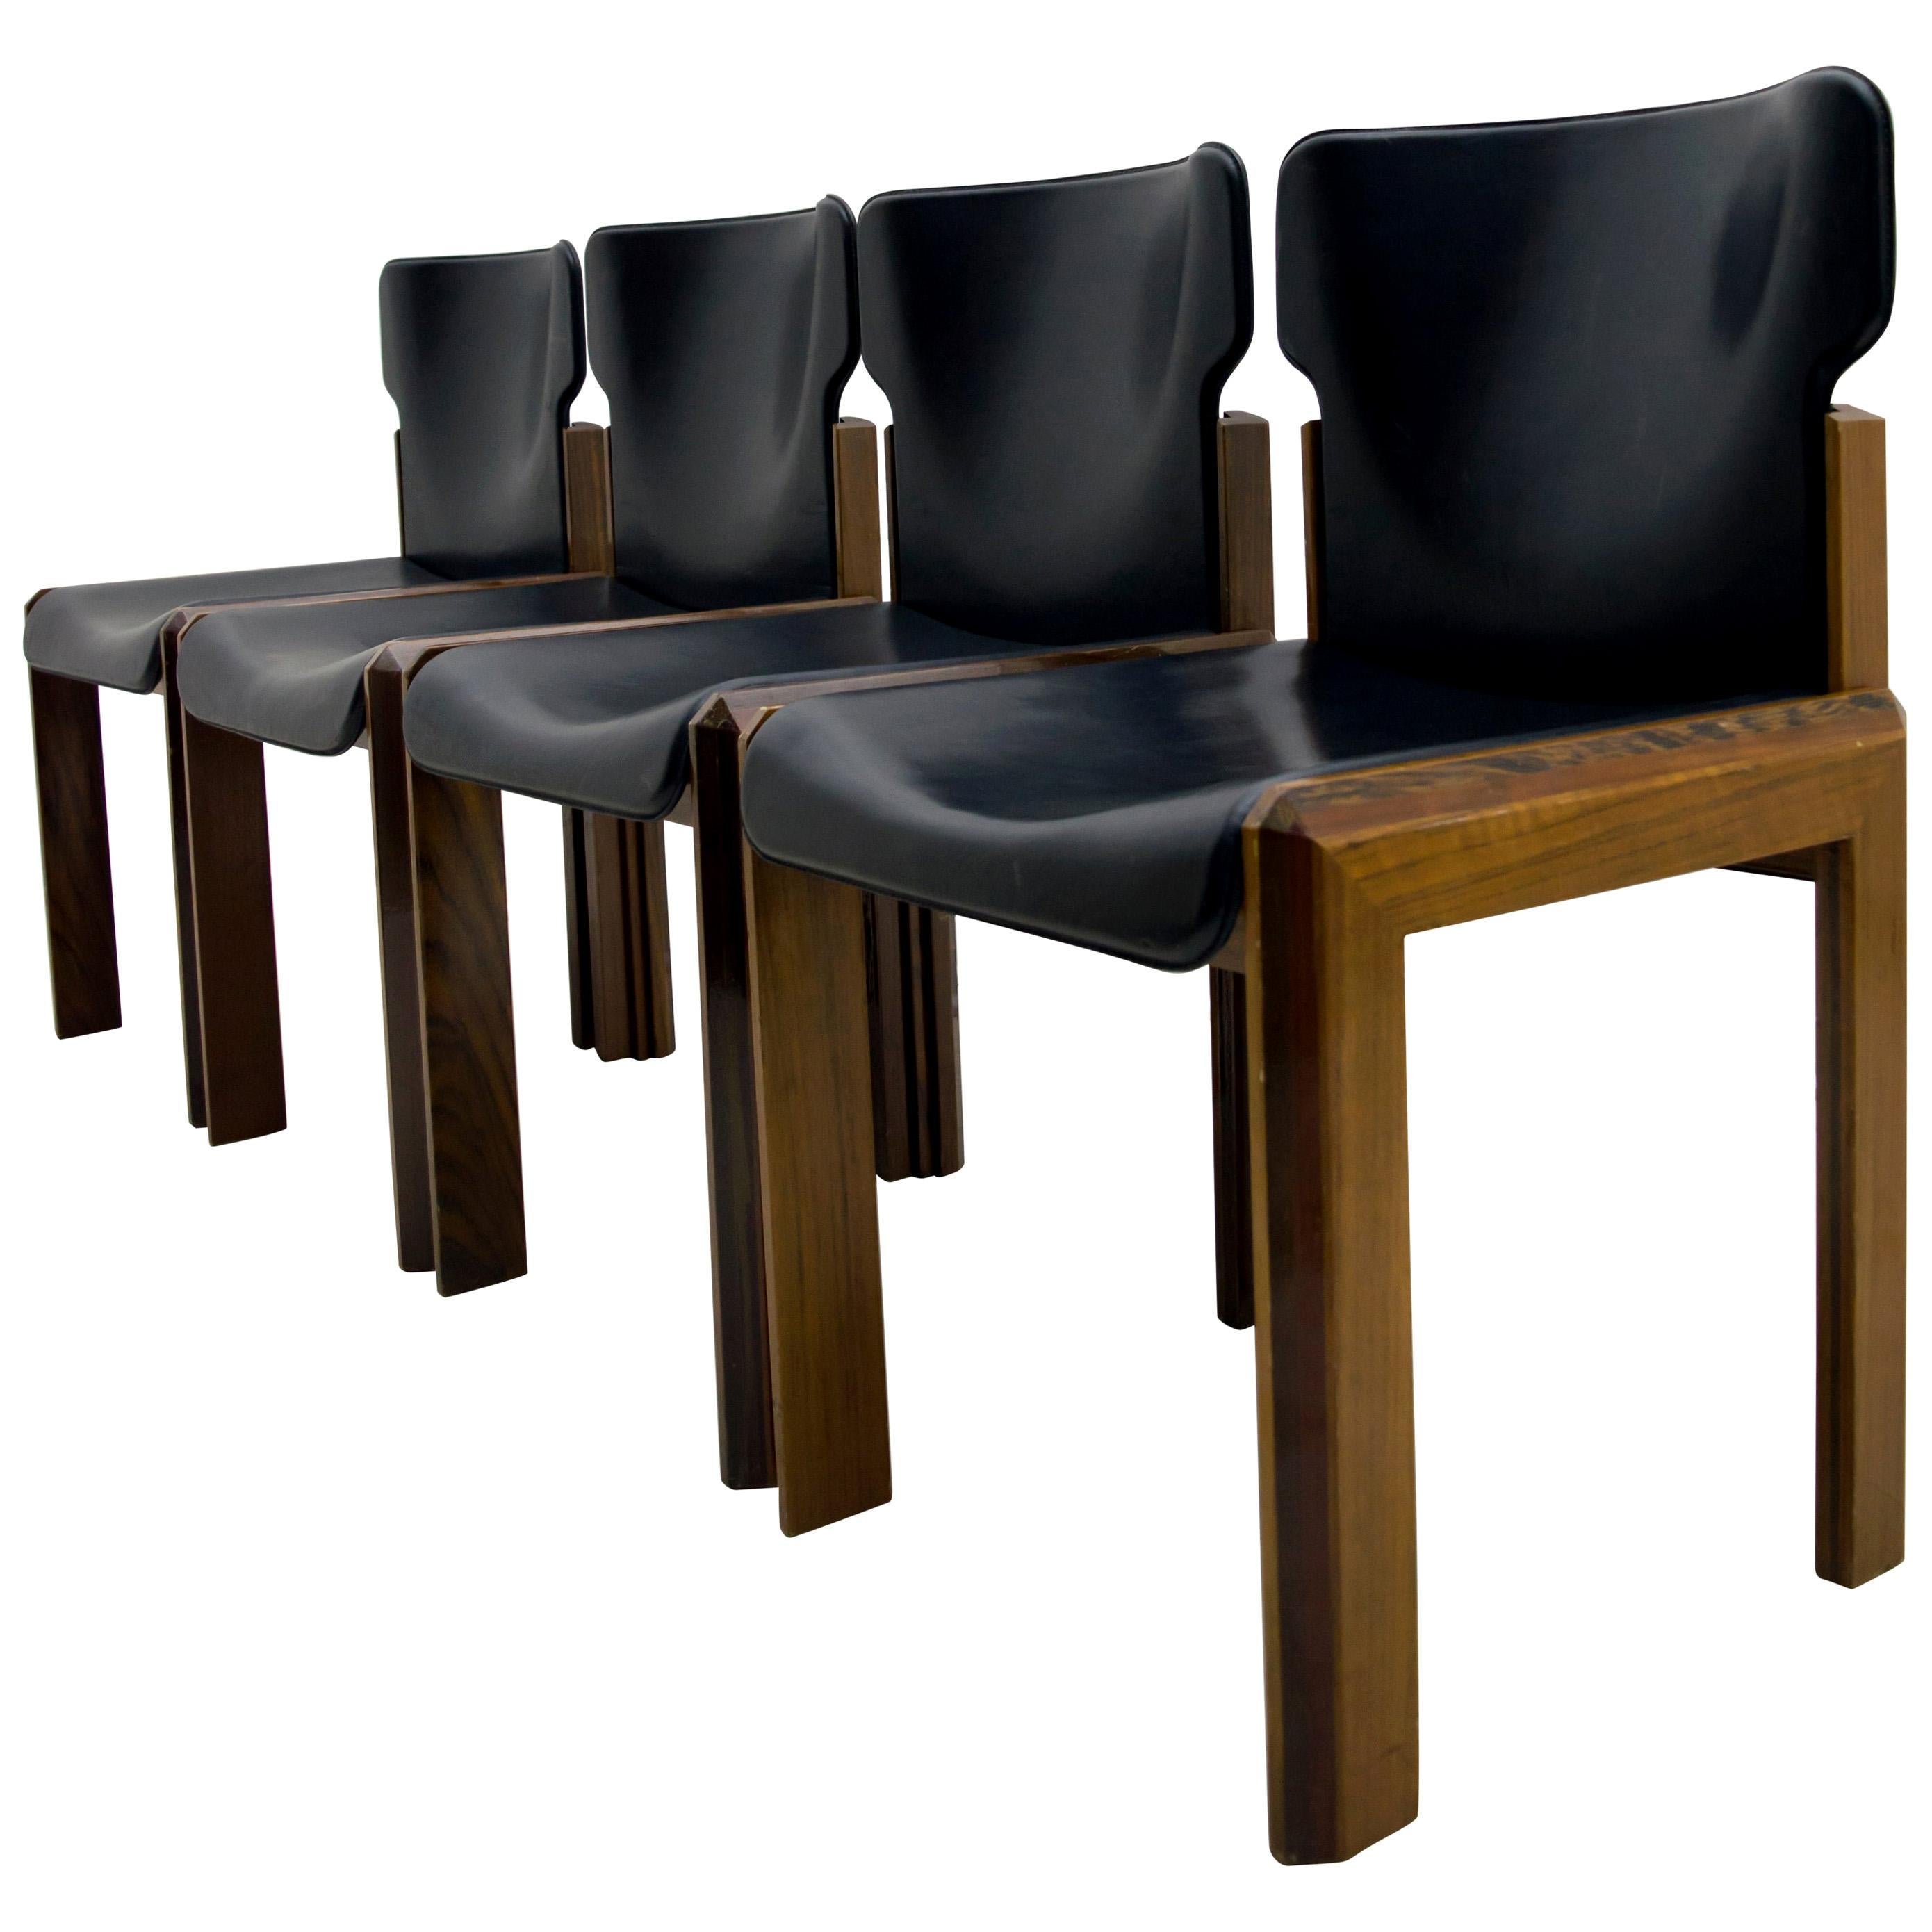 Luciano Frigerio Italian Modern Leather Dining Chairs, 1980s